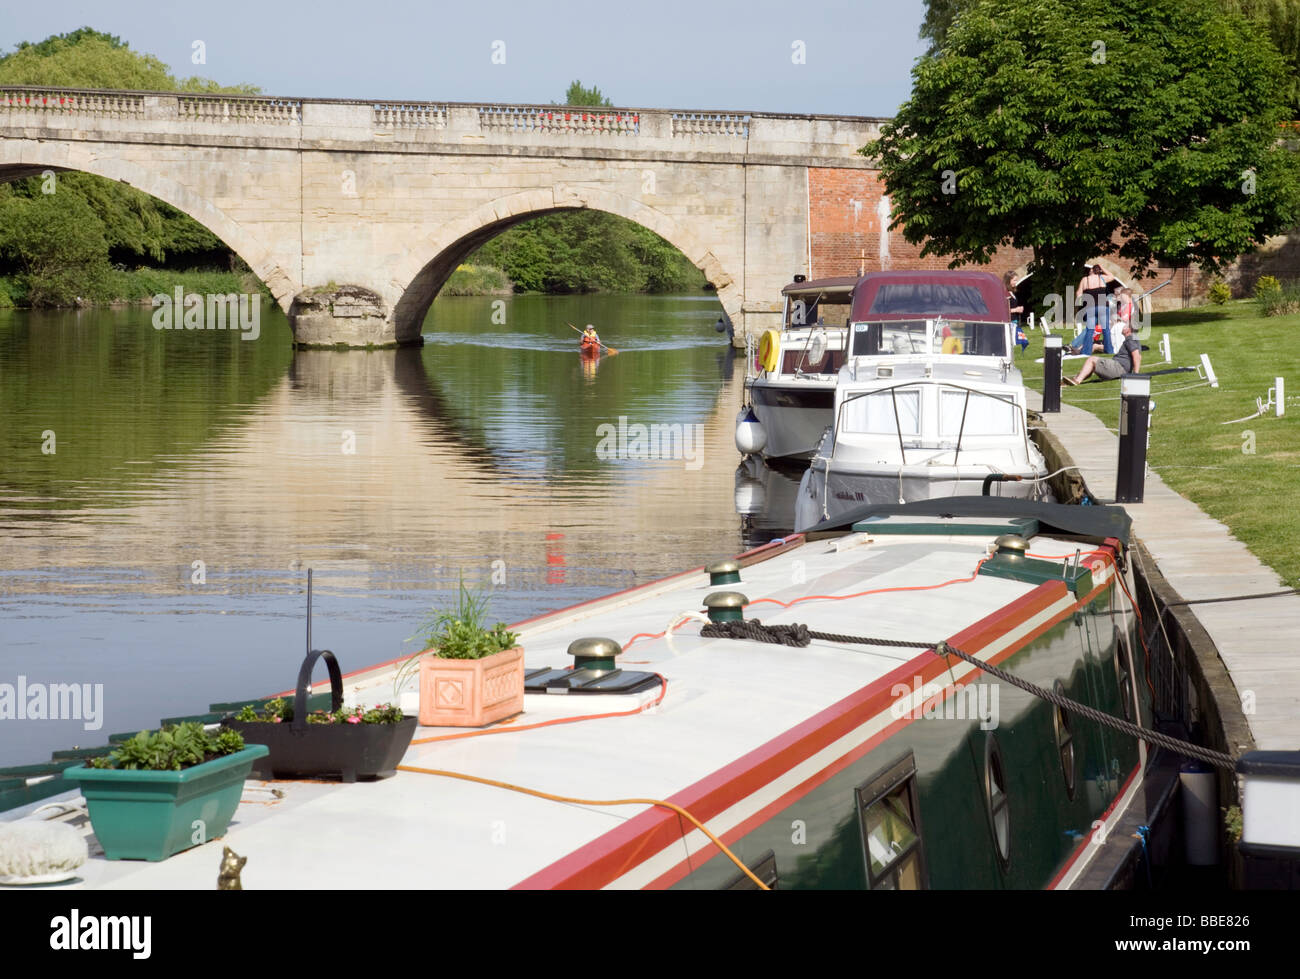 A canoe approaching boats moored on the river Thames at Shillingford, Oxfordshire, UK - Stock Image